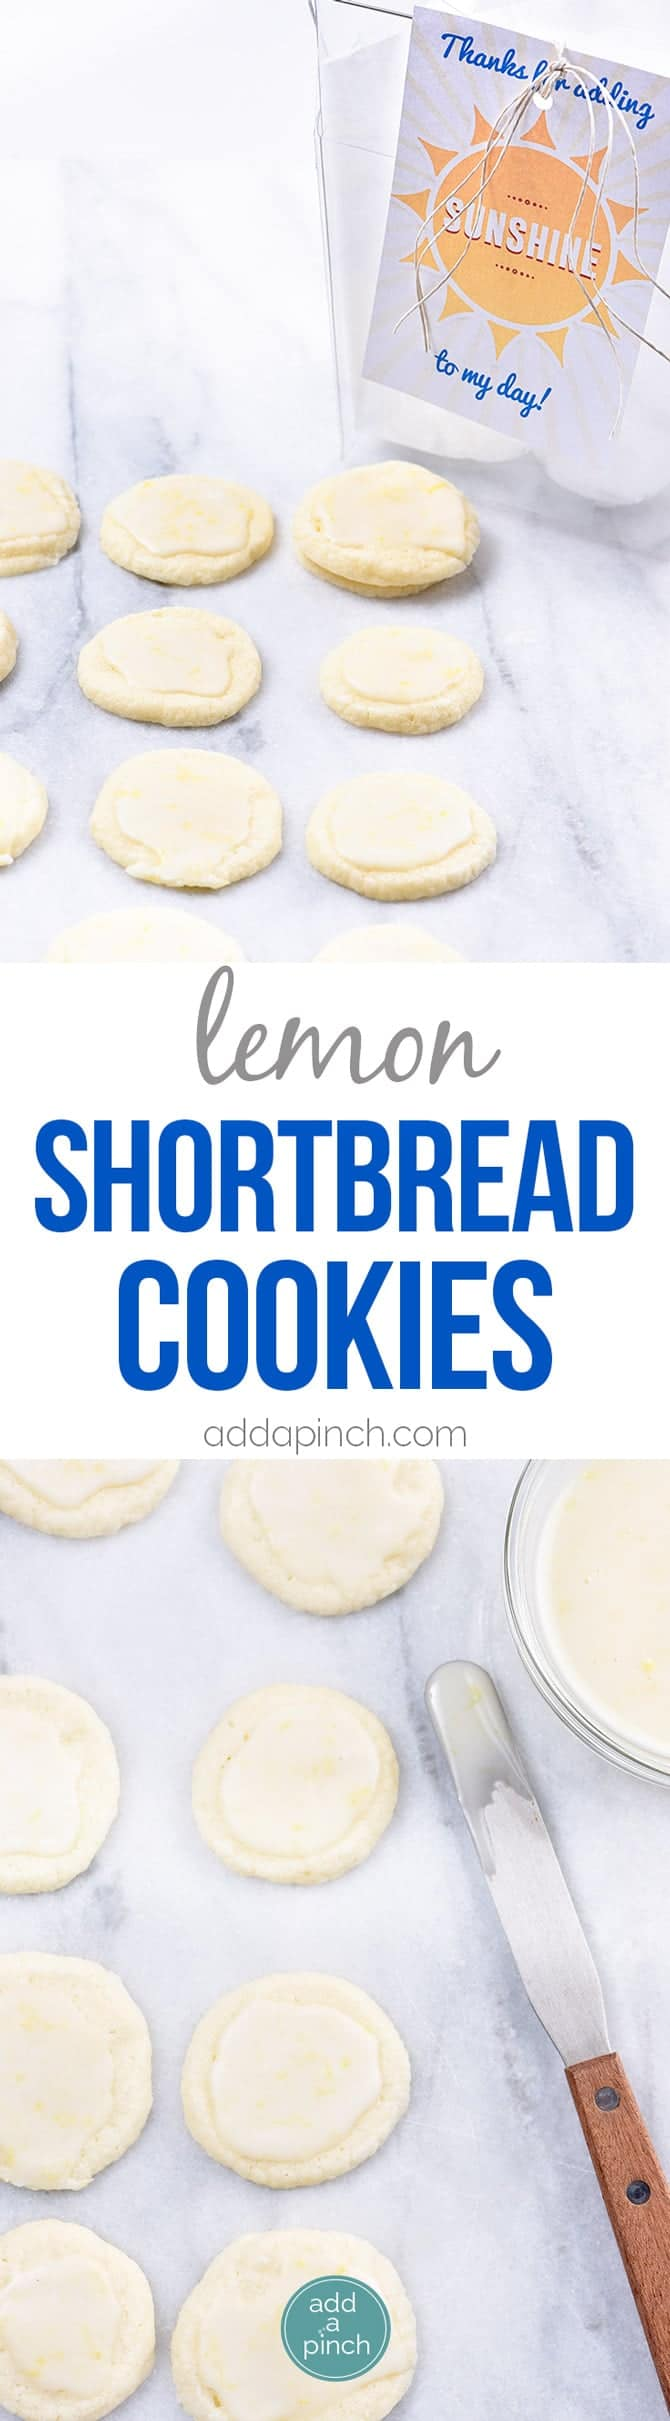 Lemon Shortbread Cookies Recipe - Lemon Shortbread Cookies make a delicious slice and bake cookie recipe perfect for sharing! Made with fresh lemons, this cookie recipe has just the perfect amount of sweet and tart that lemon lovers adore! // addapinch.com